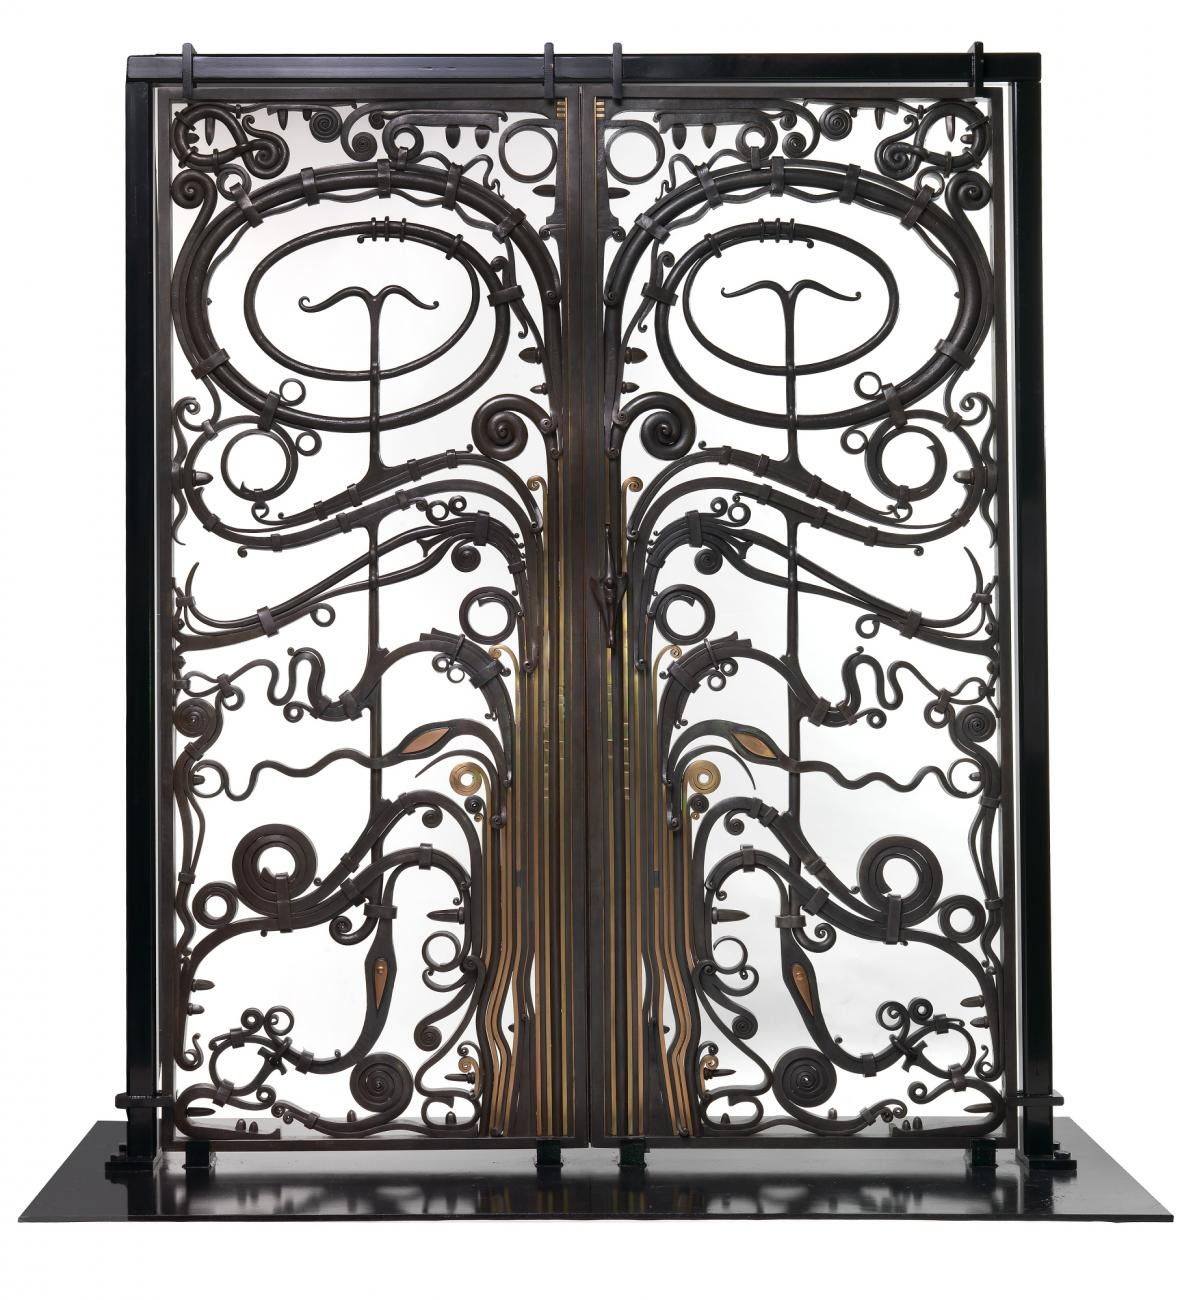 Tall metal gates with swirls and spirals